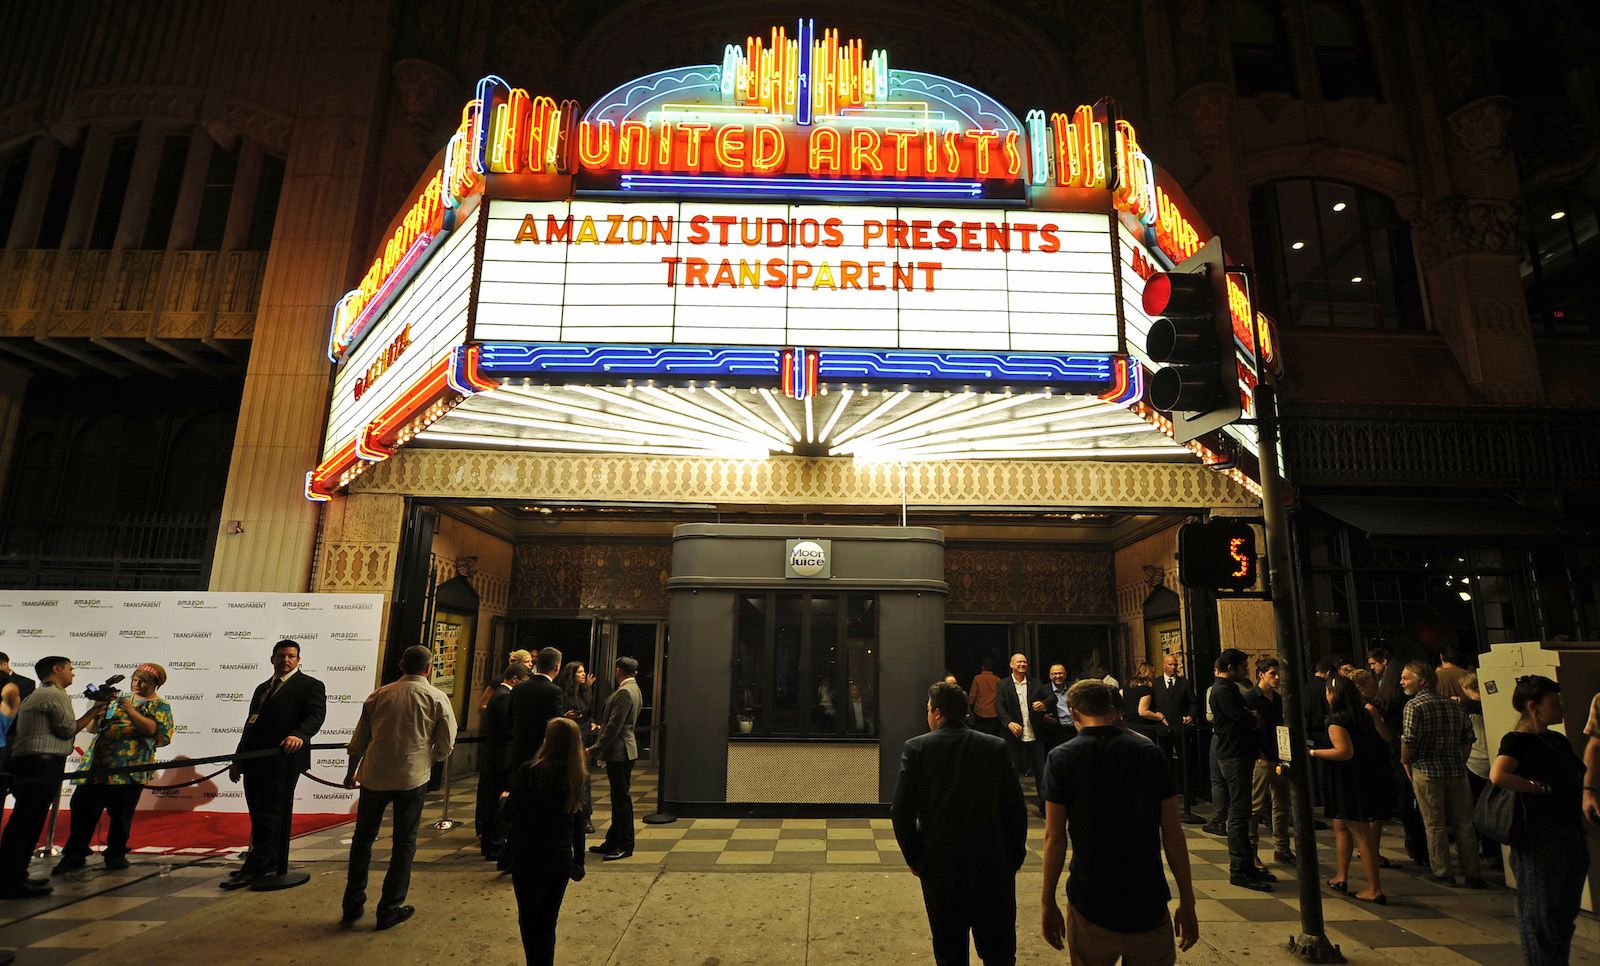 """The marquee of United Artists theater is seen during Amazon's premiere screening of the TV series """"Transparent"""" at the Ace Hotel in downtown Los Angeles, California, September 15, 2014. REUTERS/Kevork Djansezian  (UNITED STATES - Tags: ENTERTAINMENT) - RTR46DXL"""